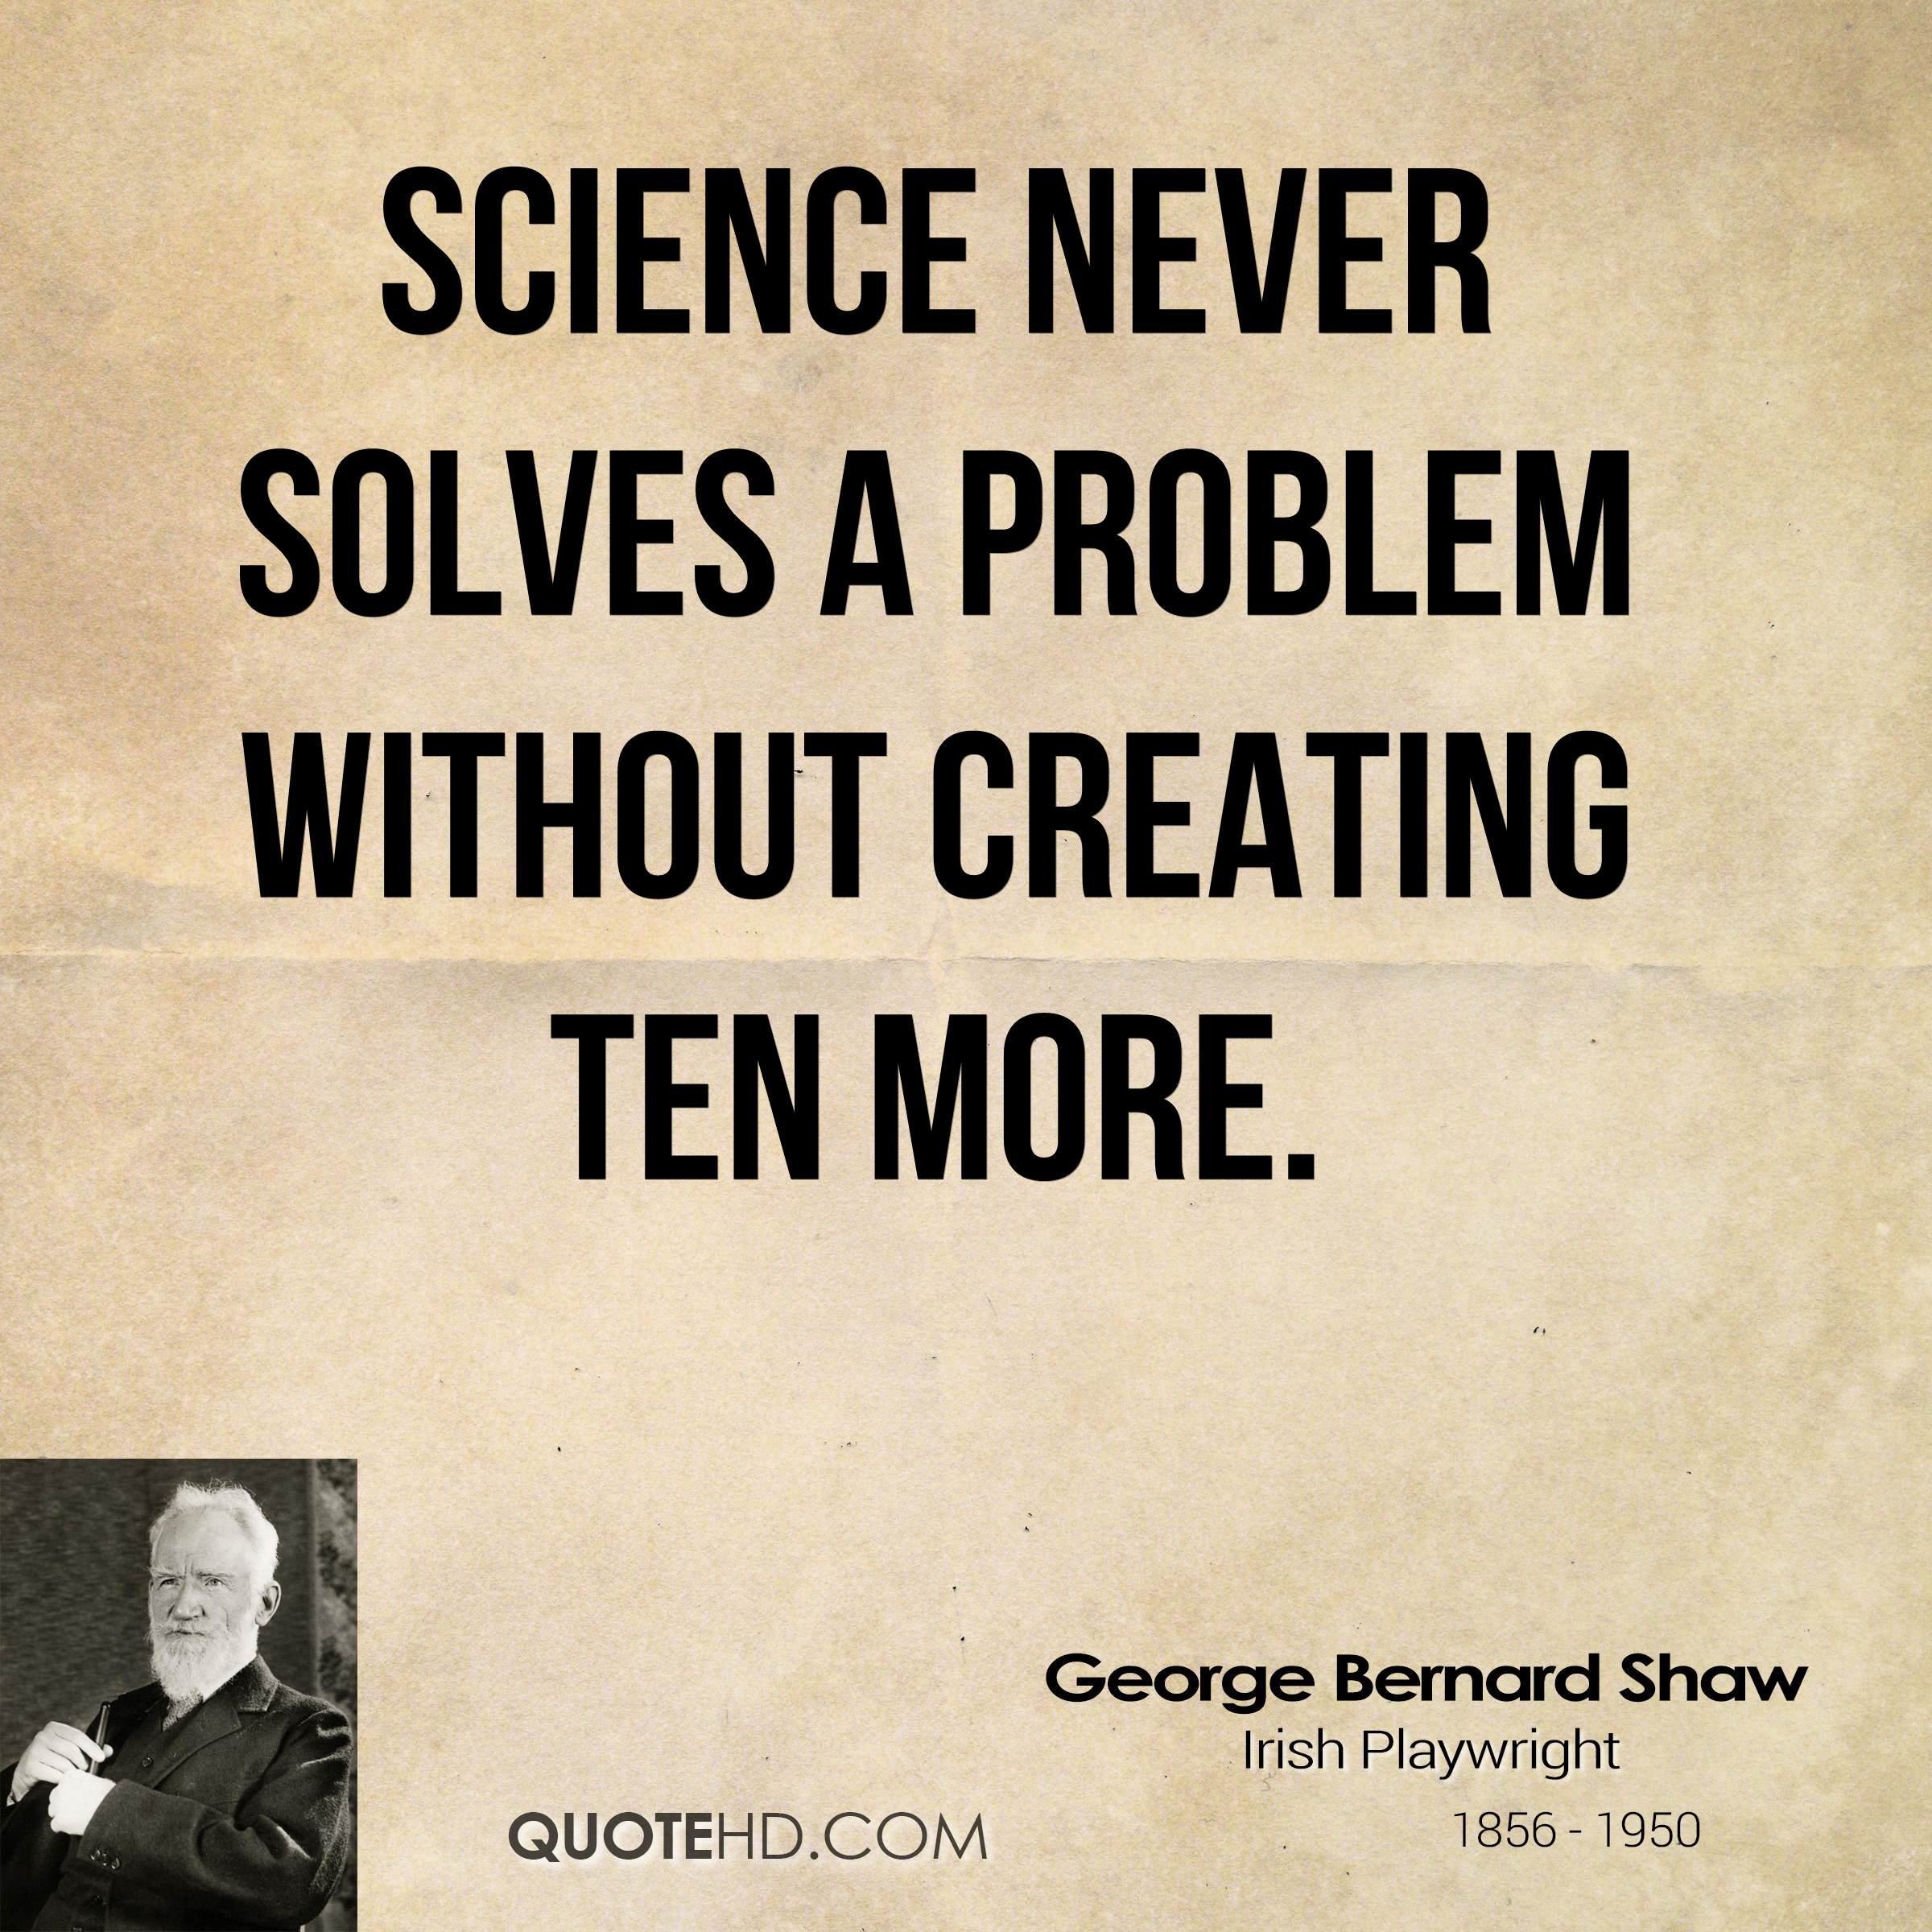 science quotes never solves scientific bernard shaw george scientist problem without quote ten research creating frankenstein sayings quotesgram